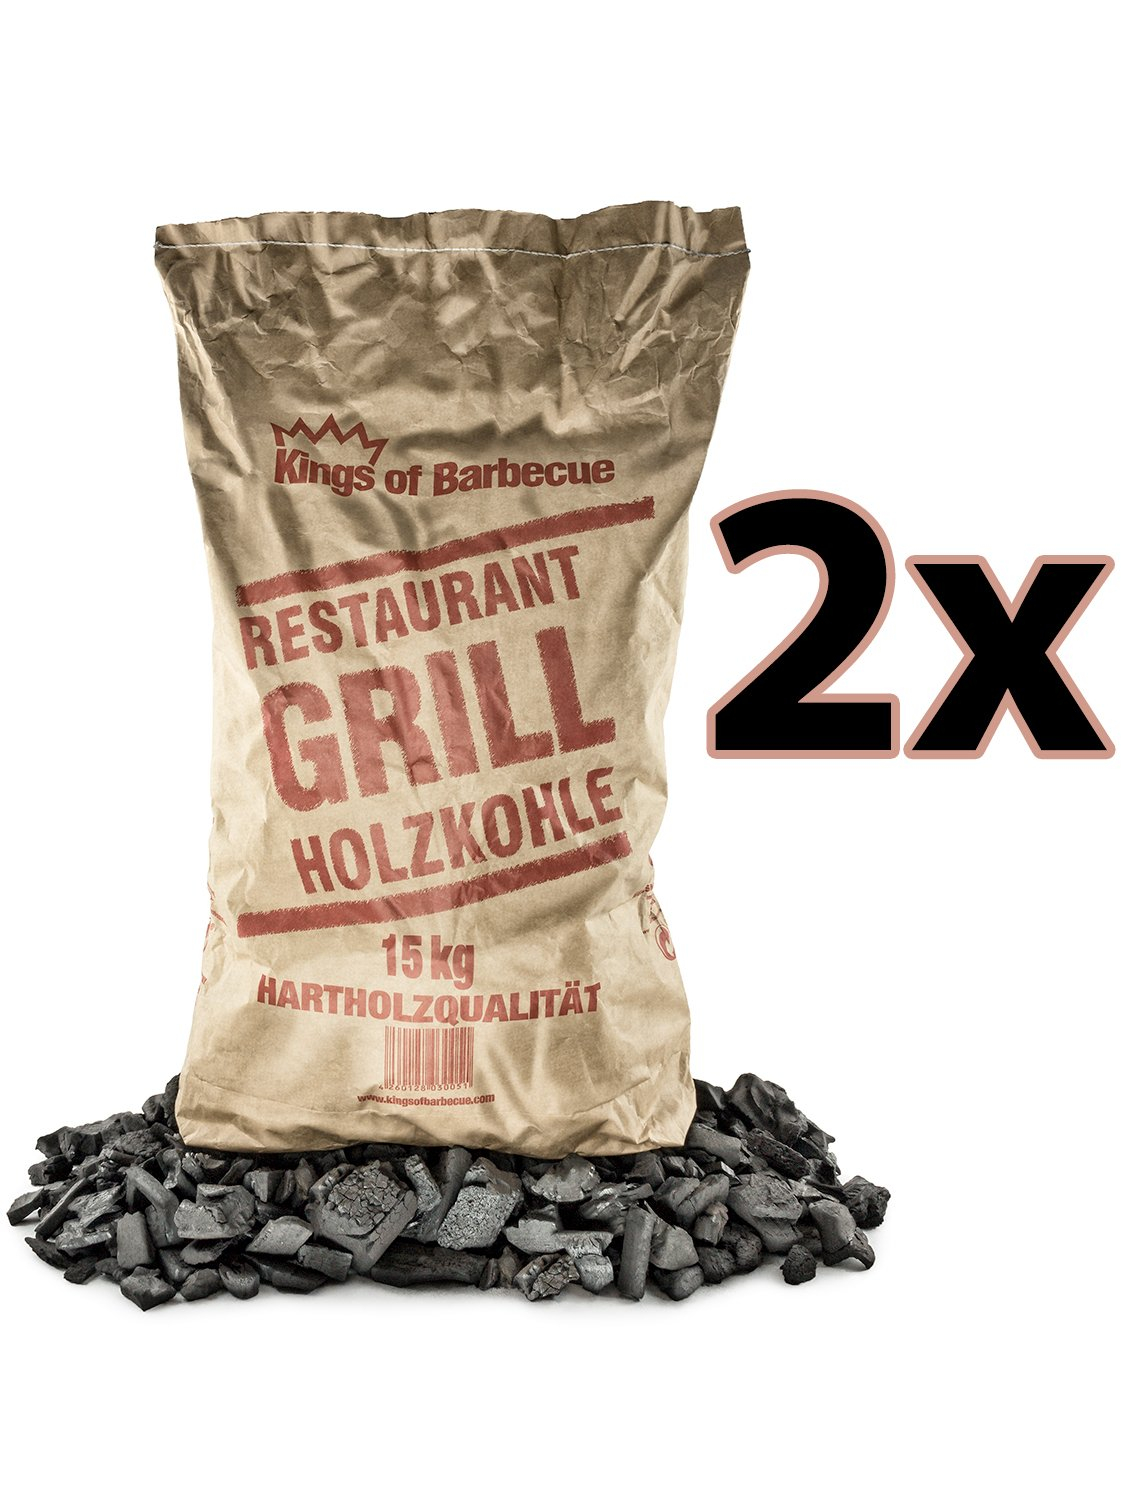 Kings of Barbecue Premium Quebracho Holzkohle Grillkohle 2x 15Kg